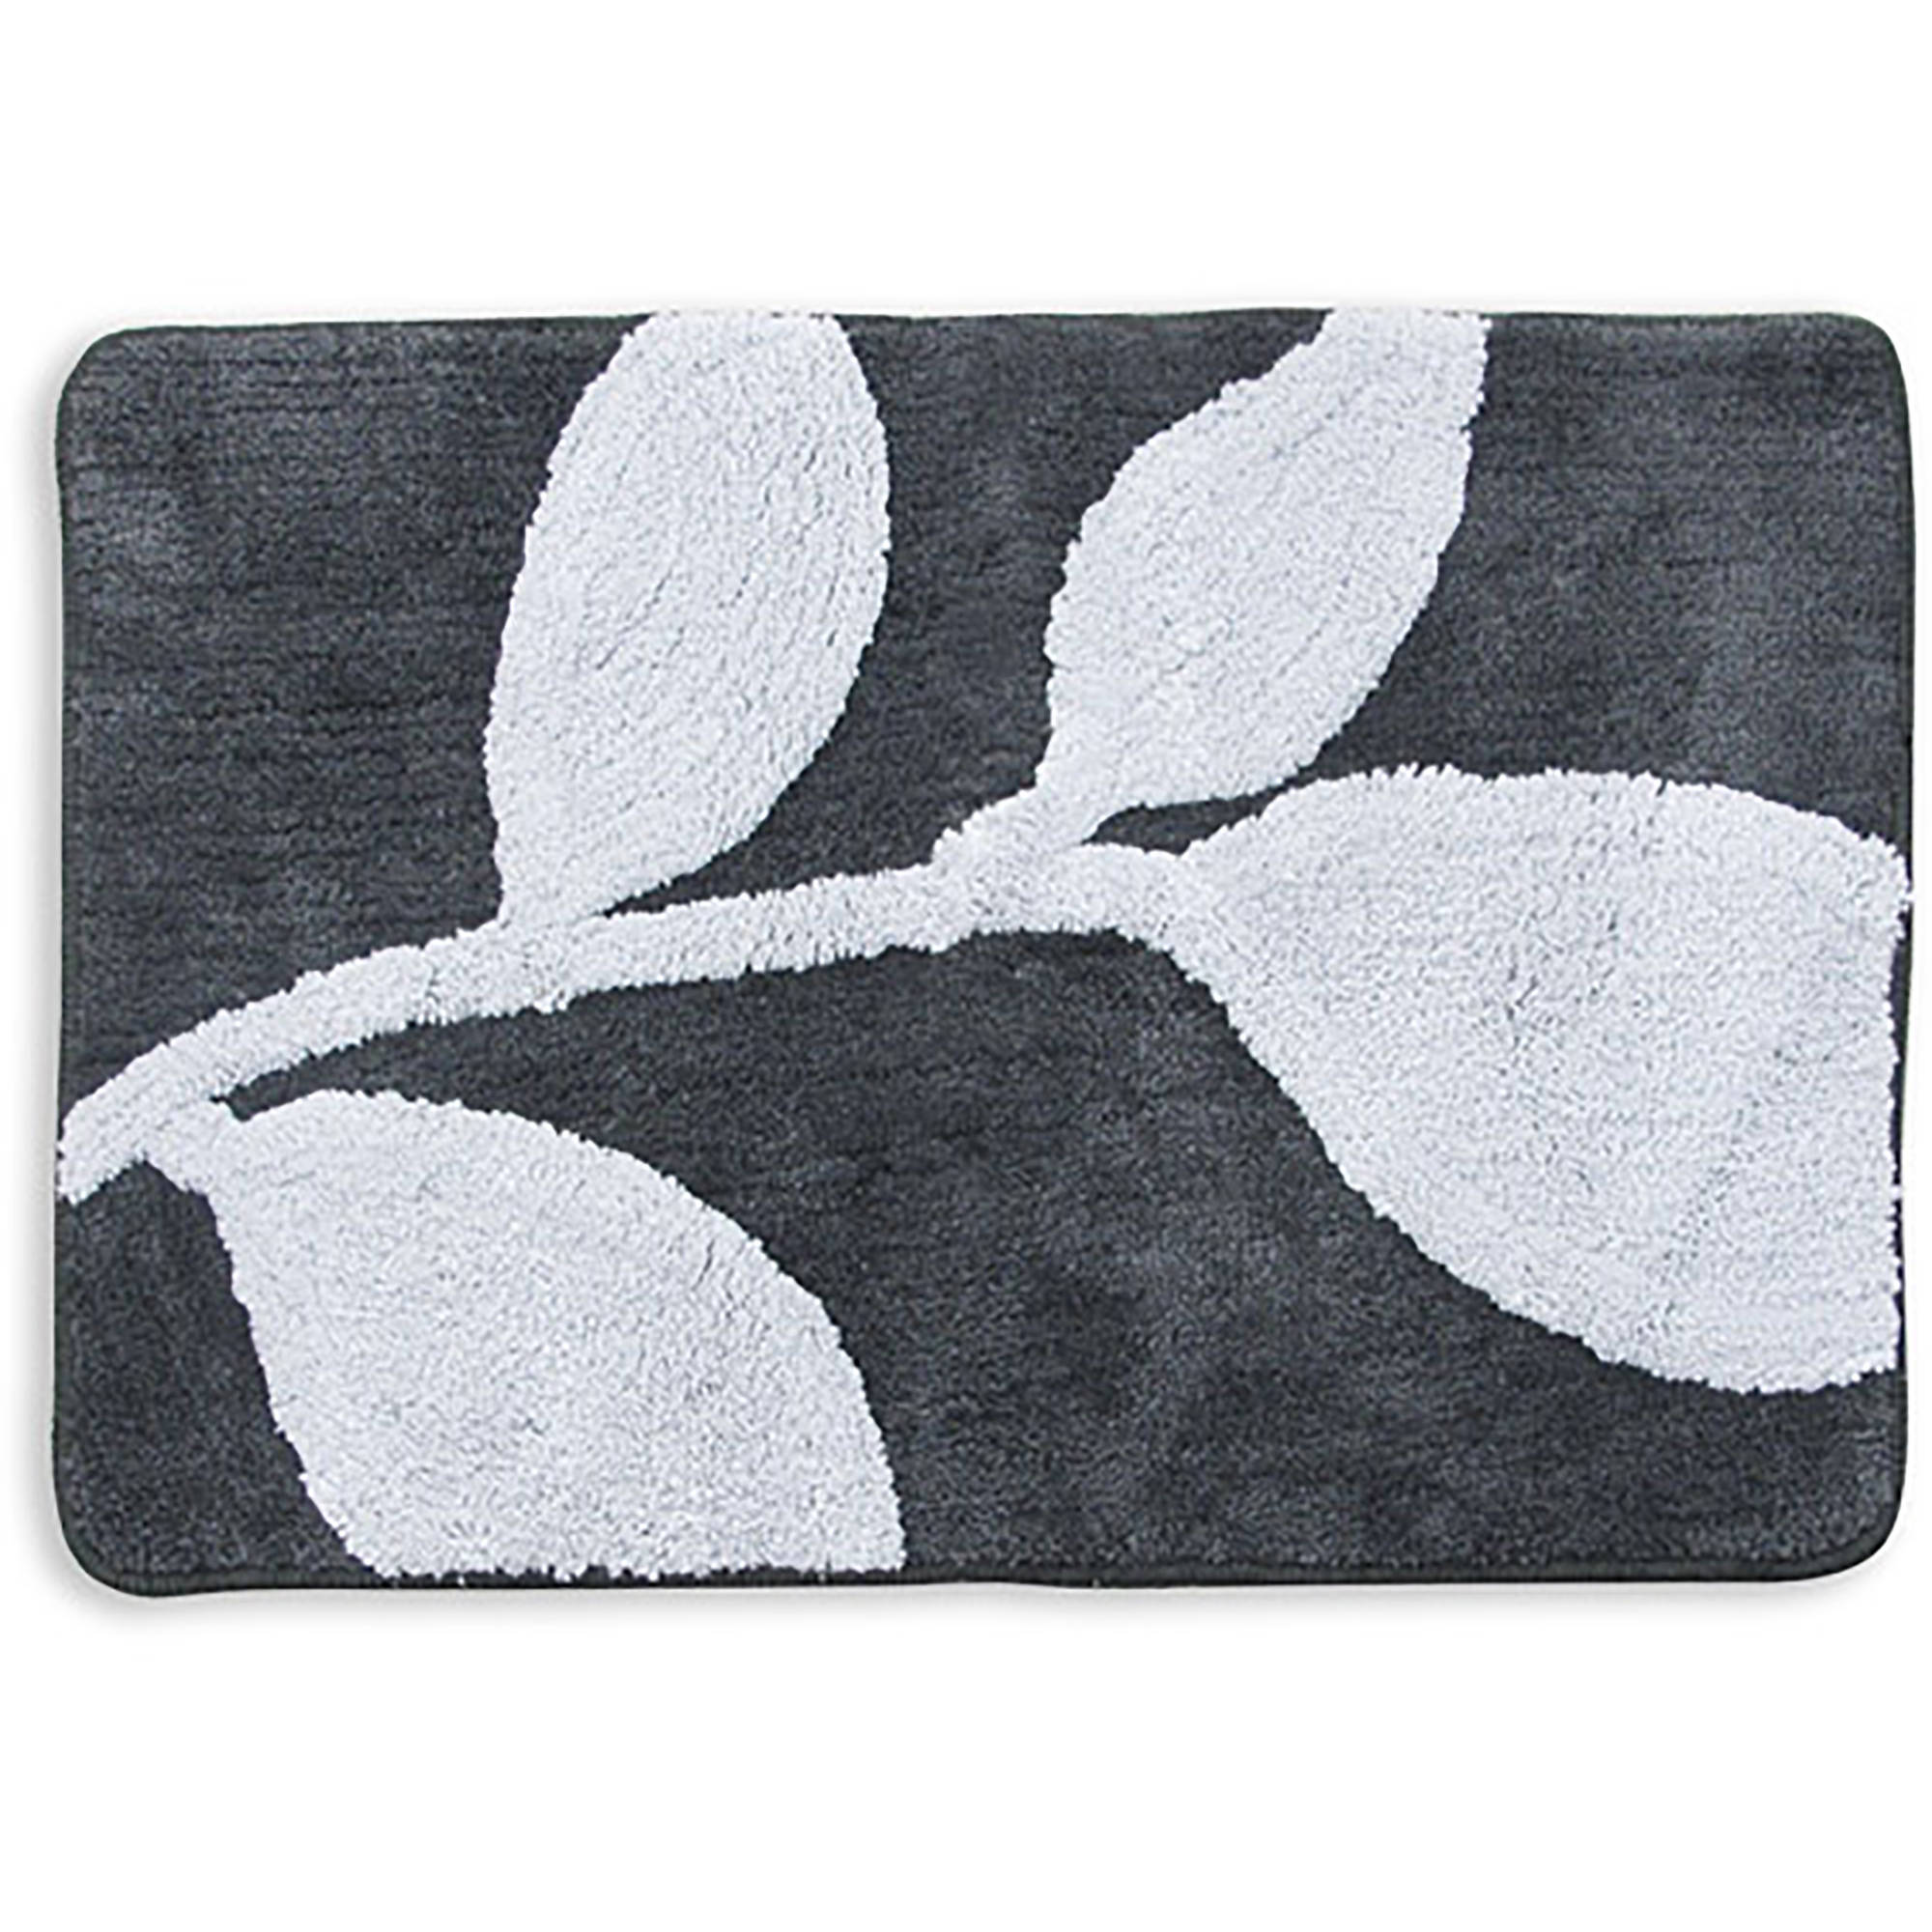 Better Homes and Gardens Tranquil Leaves Decorative Bath Collection - Bath  Rug - Traveller Location